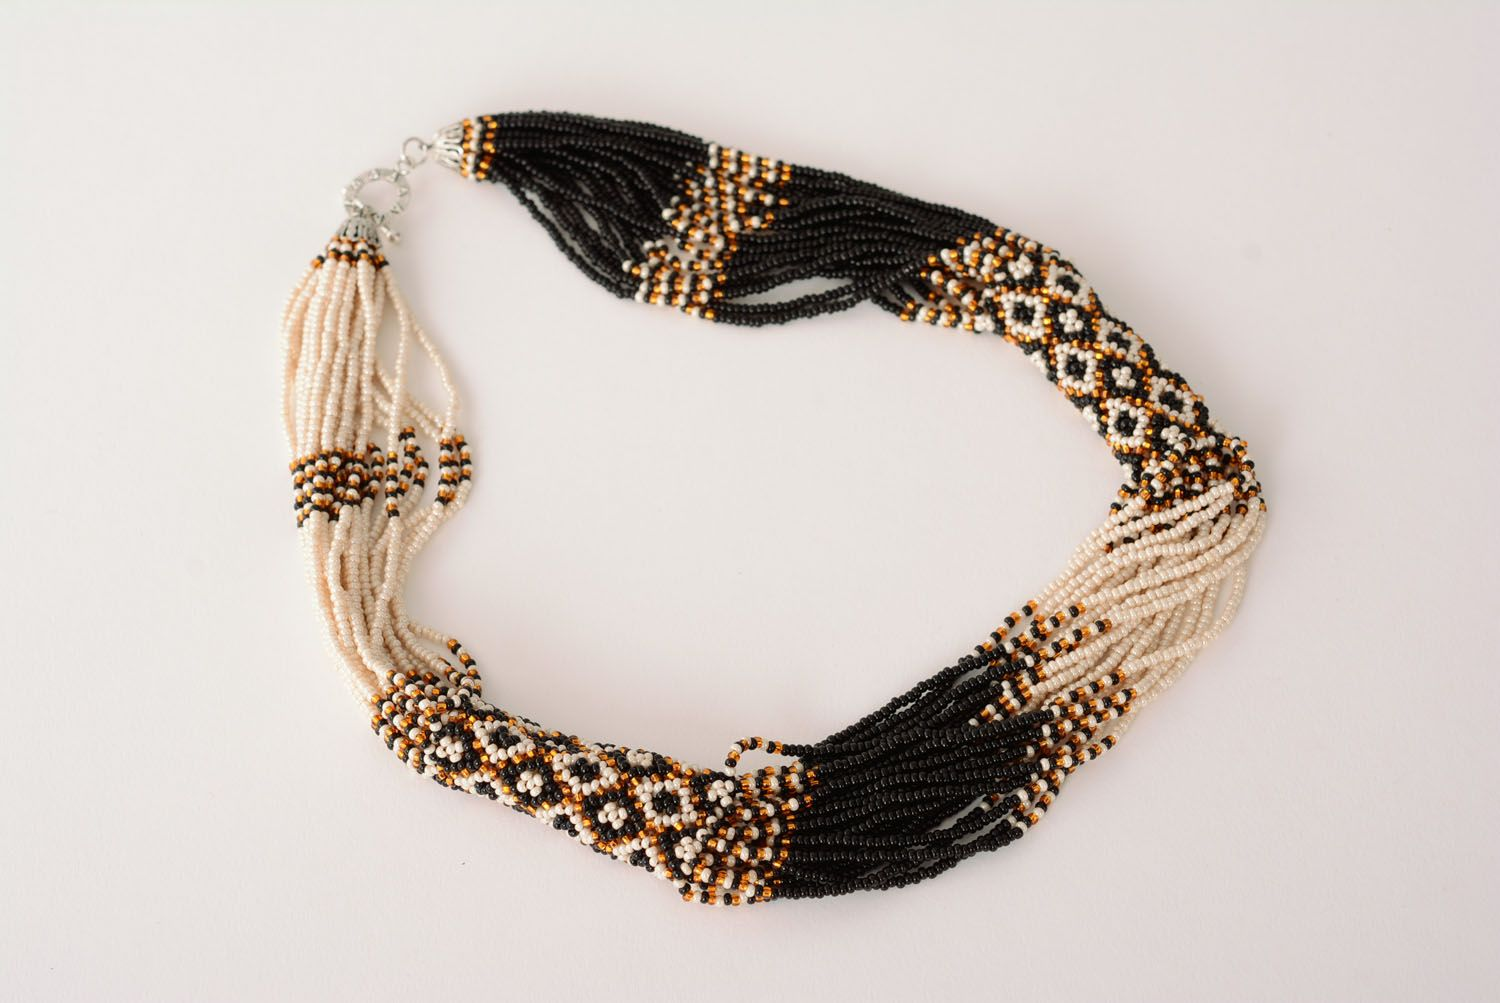 Beaded necklace with ethnic pattern photo 3